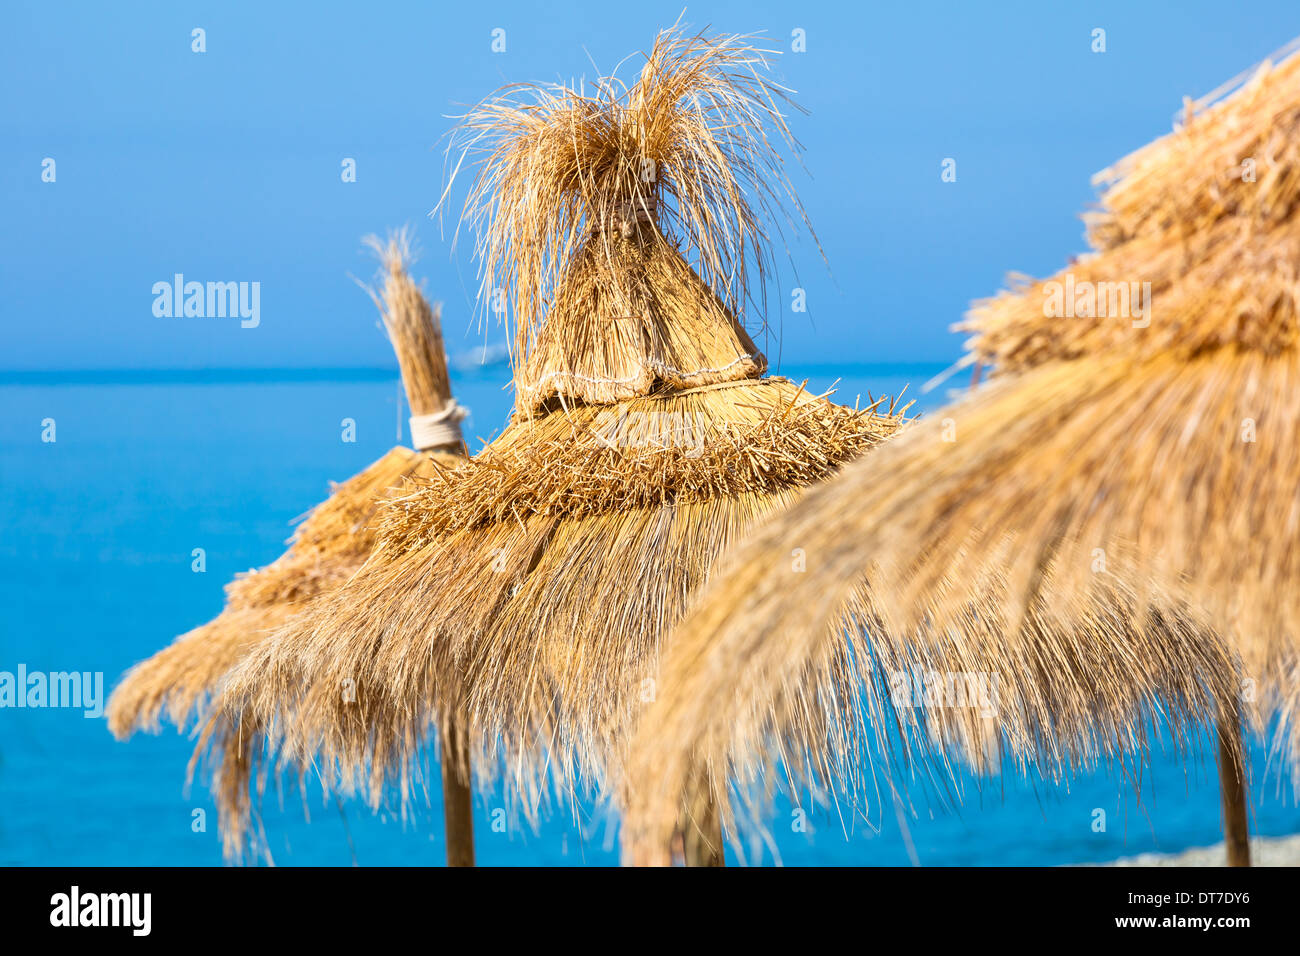 Yellow straw umbrella hats against blue sky-water background. Focus on the central hat - Stock Image